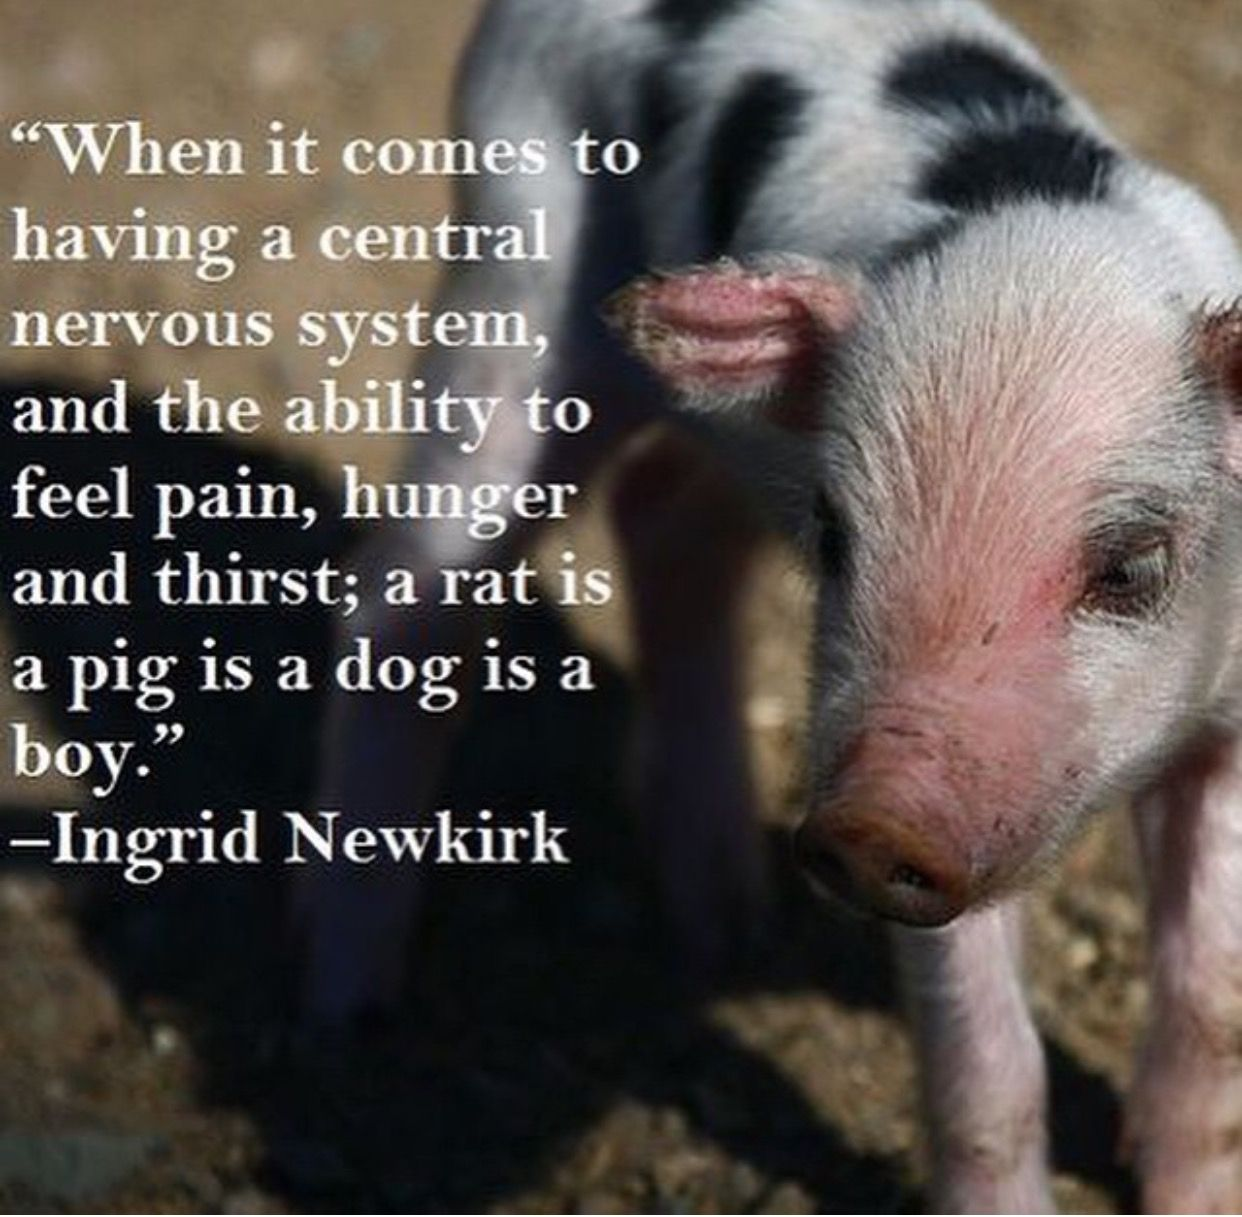 Pin by Pamela S. on Compassion for Animals Be a nice